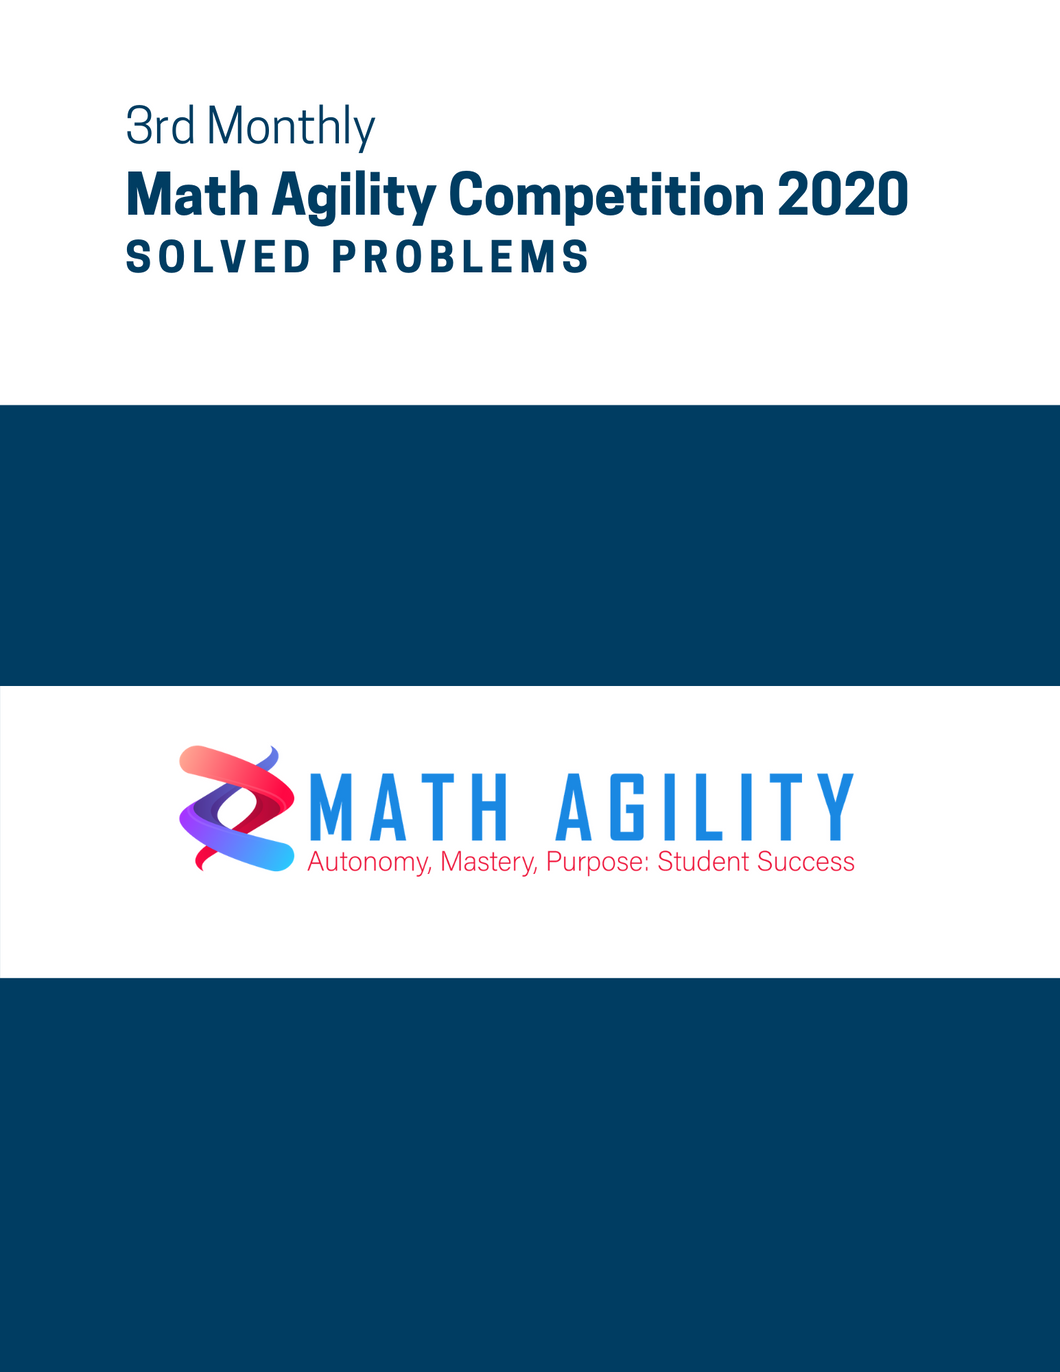 3rd Math Agility Competition 2020 Solved Problems